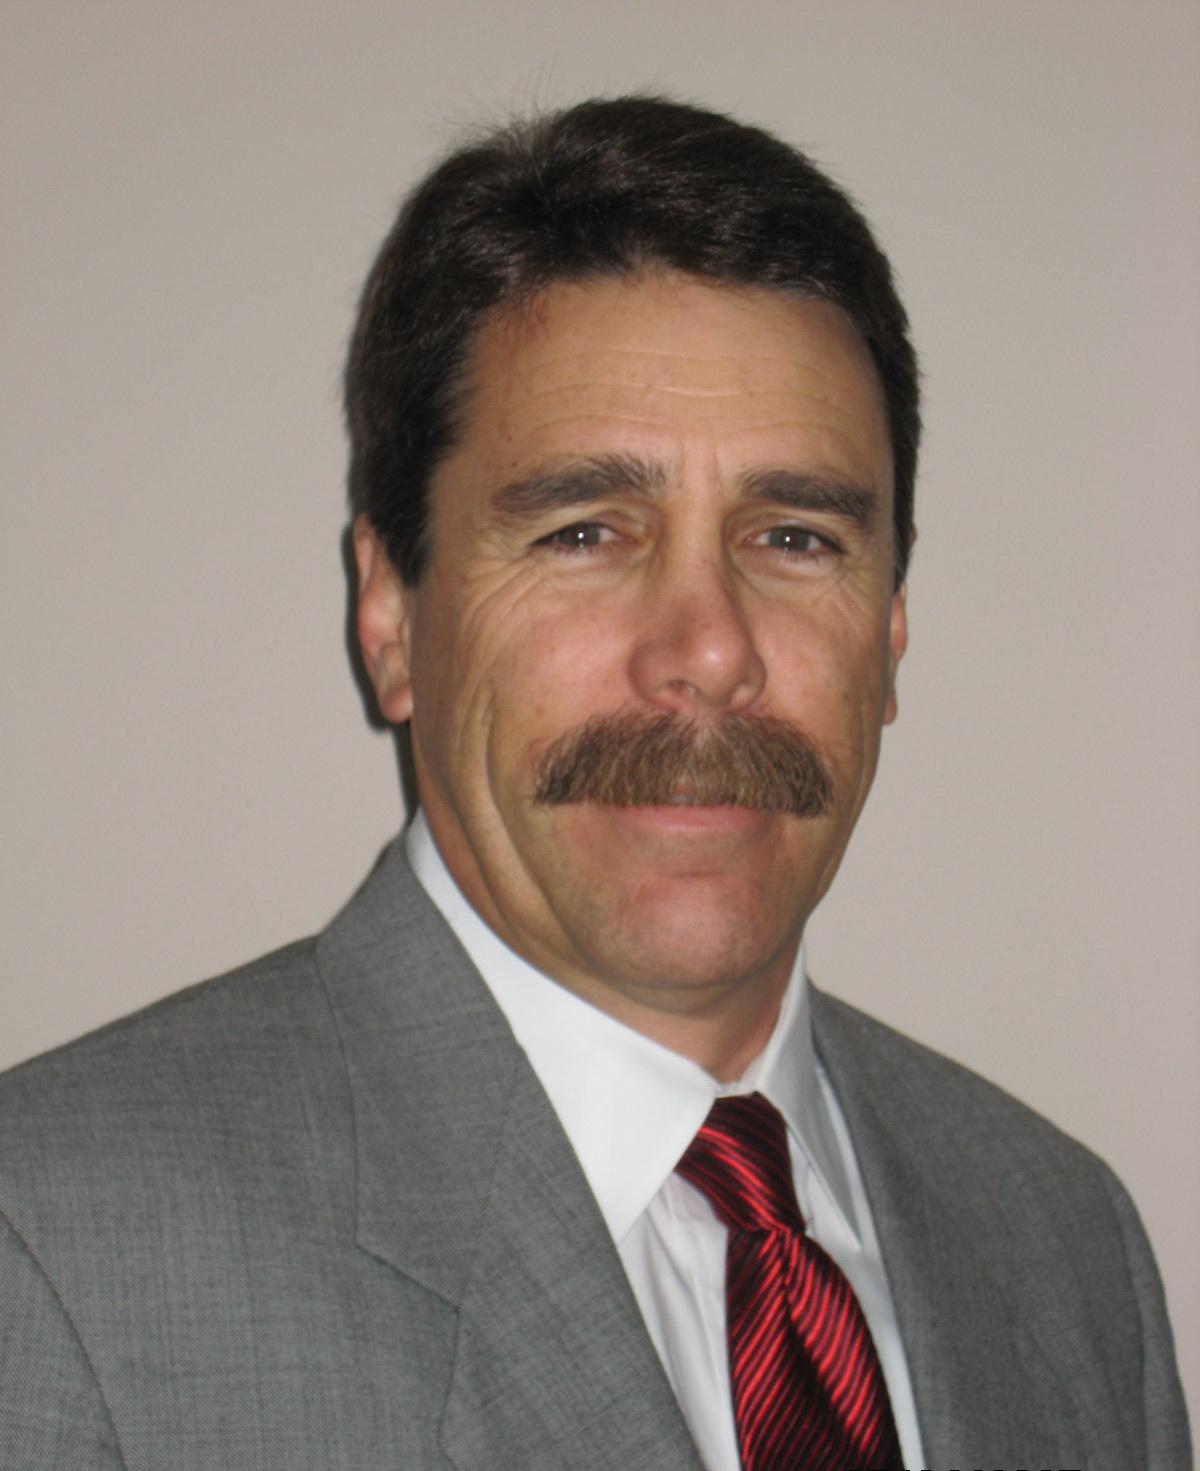 Los Angeles and Palm Springs California structured settlement expert, Michael Pickett